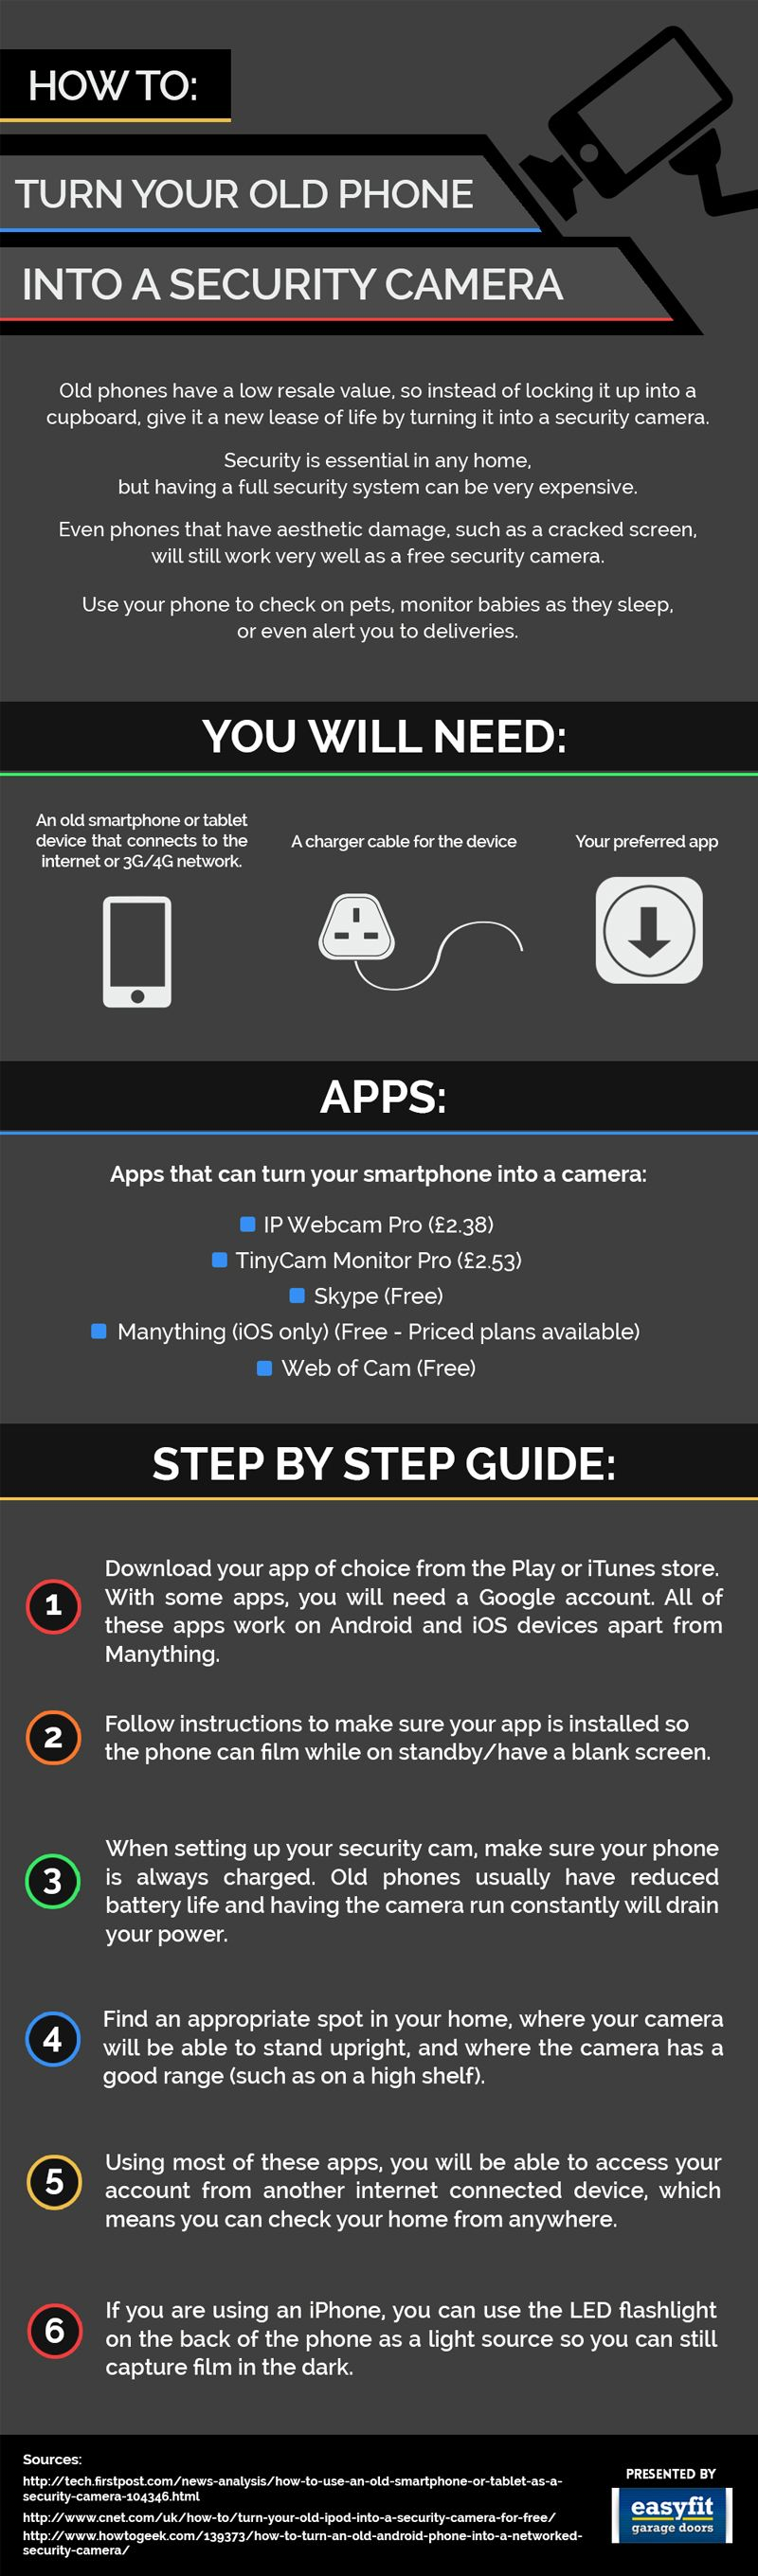 How to Turn Your Phone into a Security Camera (Infographic